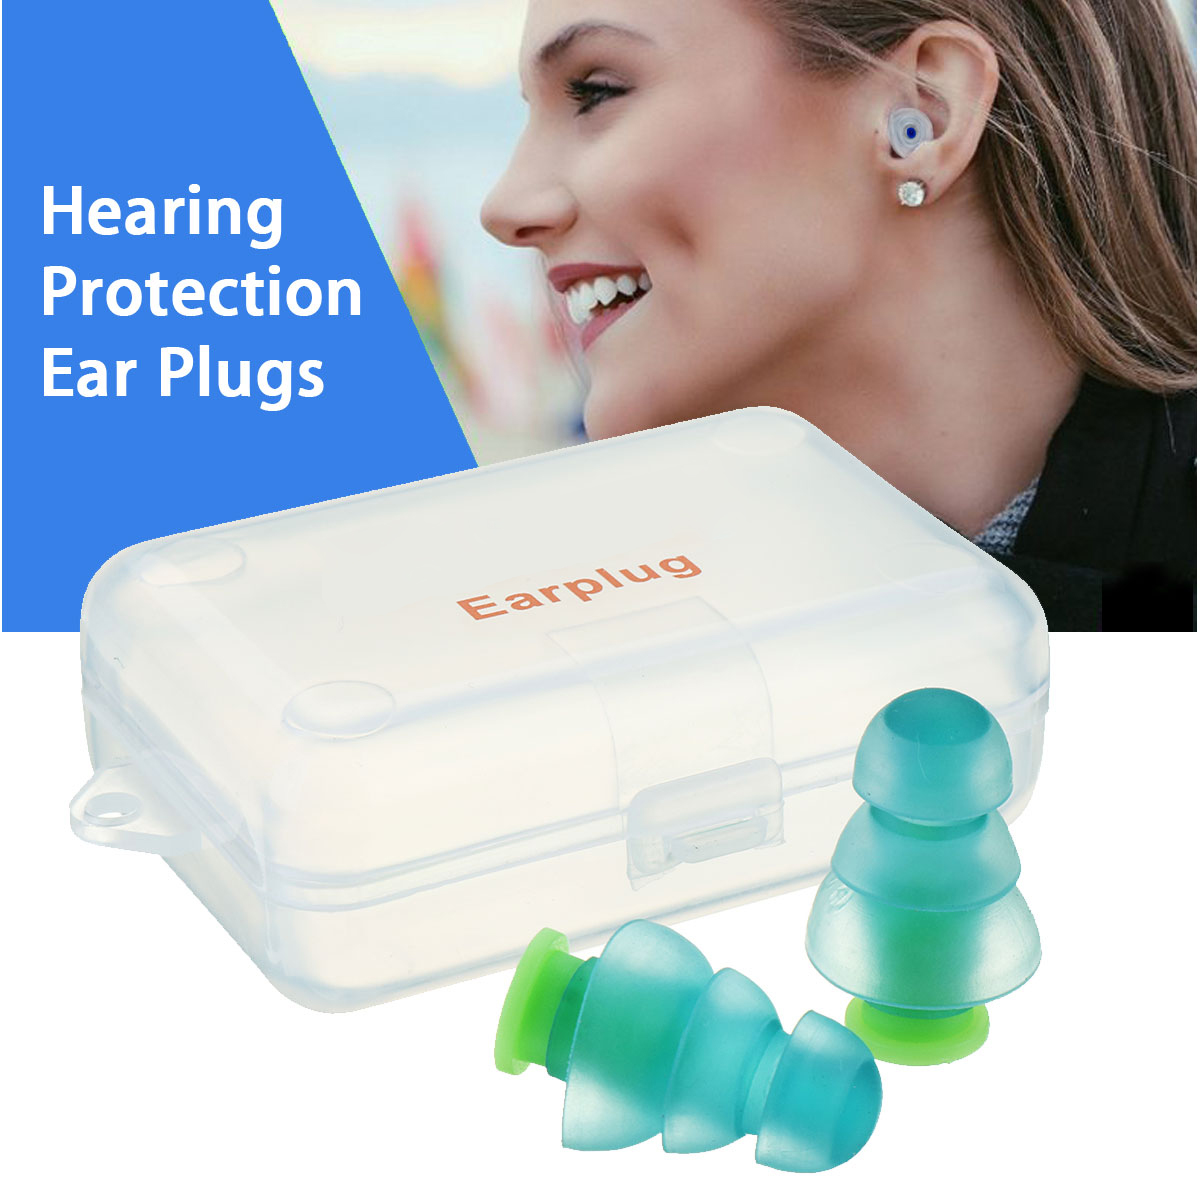 Safurance  Noise Cancelling Hearing Protection Earplugs For Concerts Musician Motorcycles Reusable Silicone Ear Plugs